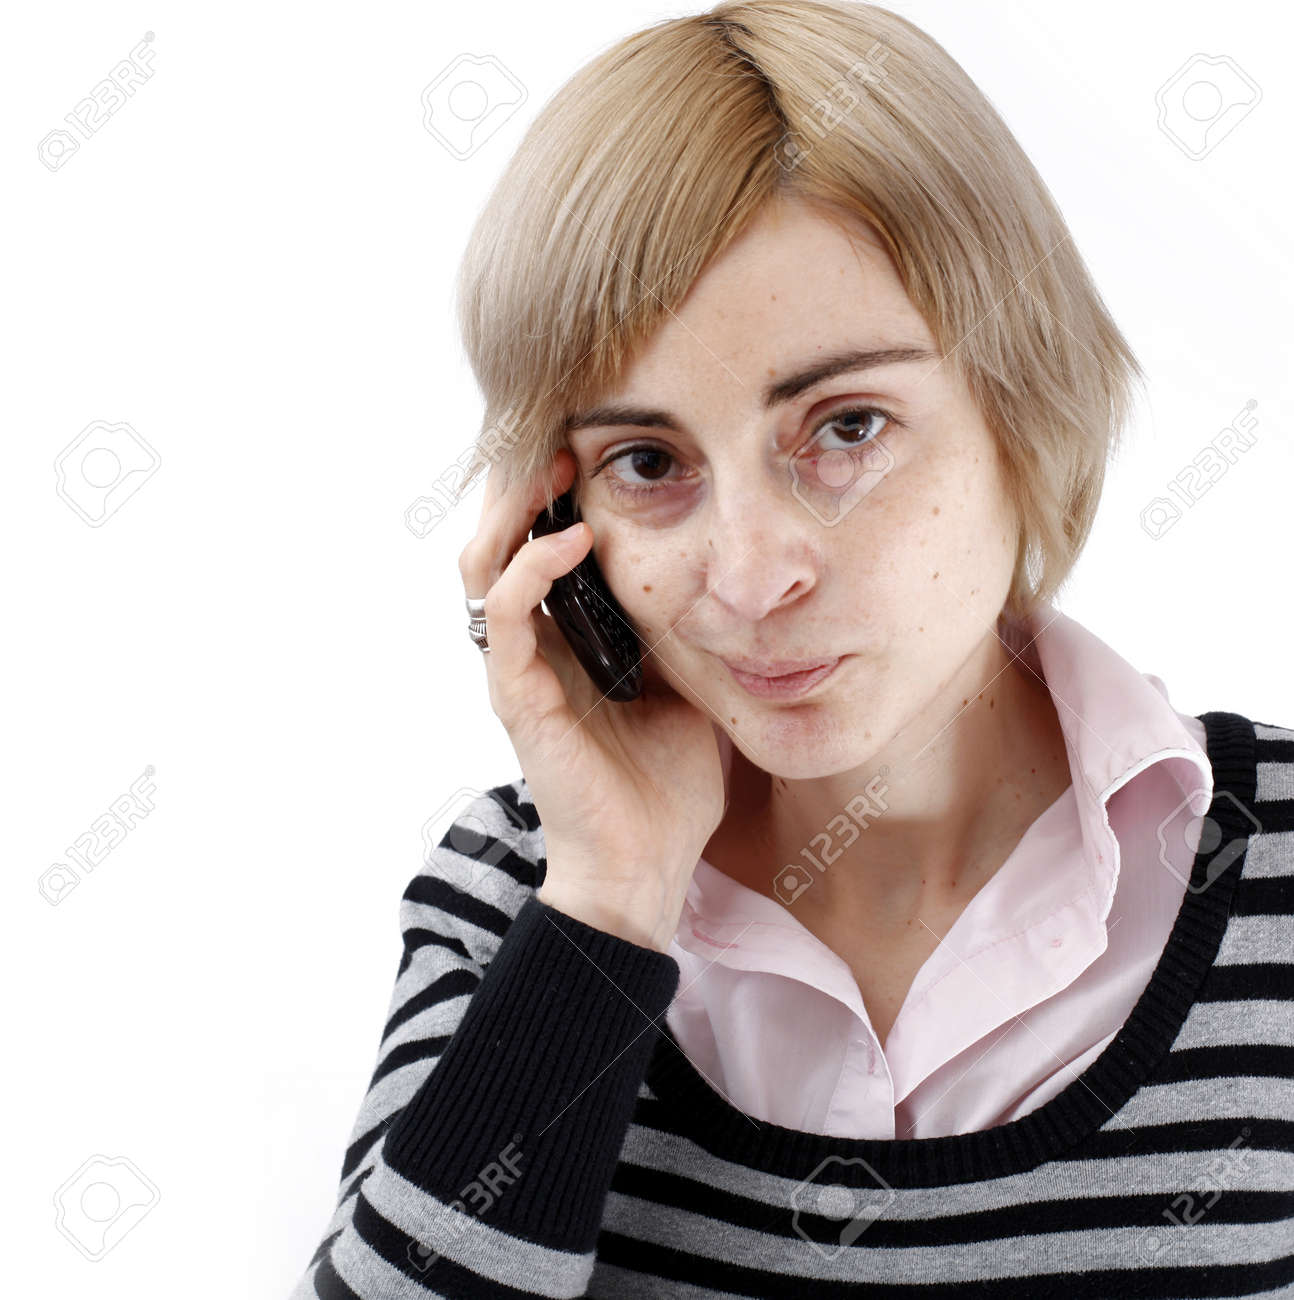 Close up photo of a woman talking on phone. Stock Photo - 23159831